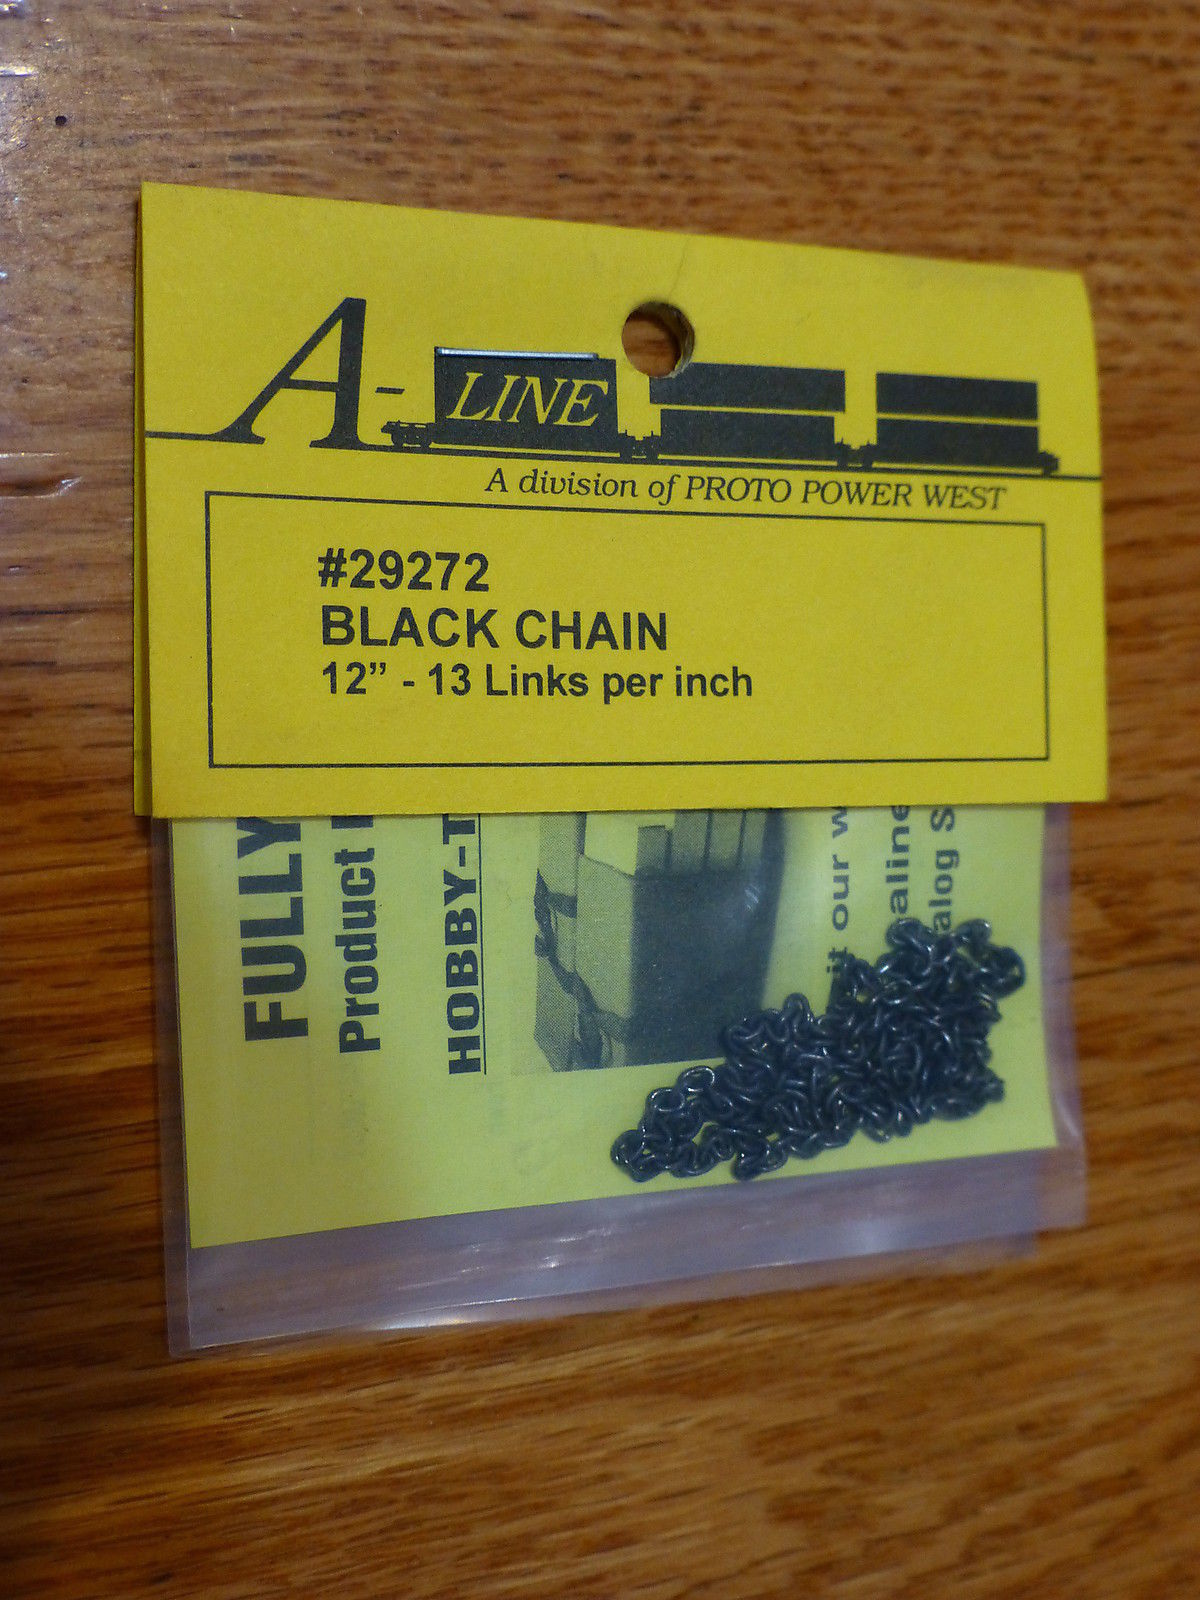 A-Line 29272 HO Tie Down Chain - Black 13 Links Per Inch This is an A-Line 29272 HO Scale Tie Down Chain - Black 13 Links Per Inch. Brass Chain (12) - Used to tie down open loads on freight cars, vehicle trailers and locomotive handrails. Brass chain is packaged in 12 inch lengths.Condition: Factory New (C-9All original; unused; factory rubs and evidence of handling, shipping and factory test run.Standards for all toy train related accessory items apply to the visual appearance of the item and do not consider the operating functionality of the equipment.Condition and Grading Standards are subjective, at best, and are intended to act as a guide. )Operational Status: FunctionalThis item is brand new from the factory.Original Box: Yes (P-9May have store stamps and price tags. Has inner liners.)Manufacturer: A-LineModel Number: 29272MSRP: $4.95Scale/Era: HO ModernModel Type: AccessoriesAvailability: Ships in 3 to 5 Business Days.The Trainz SKU for this item is P11953881. Track: 11953881 - FS - 001 - TrainzAuctionGroup00UNK - TDIDUNK